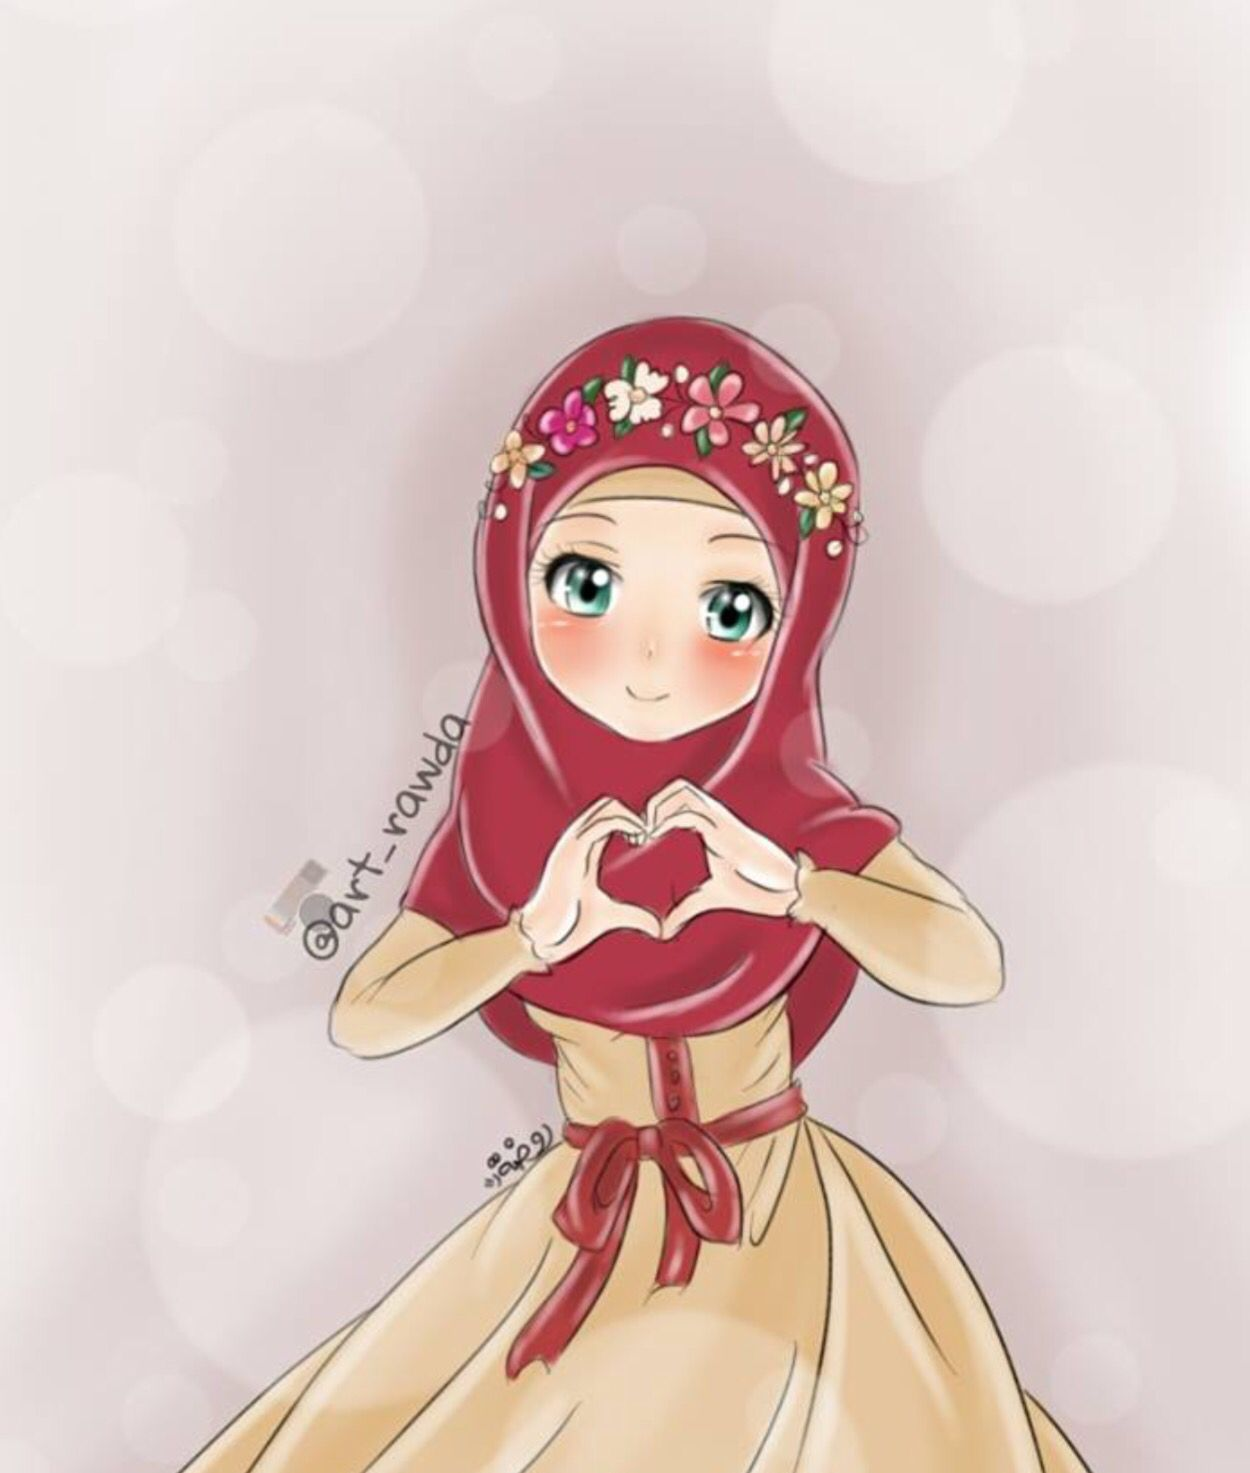 Hijab anime muslimah Pinterest Anime, Muslim and Islam